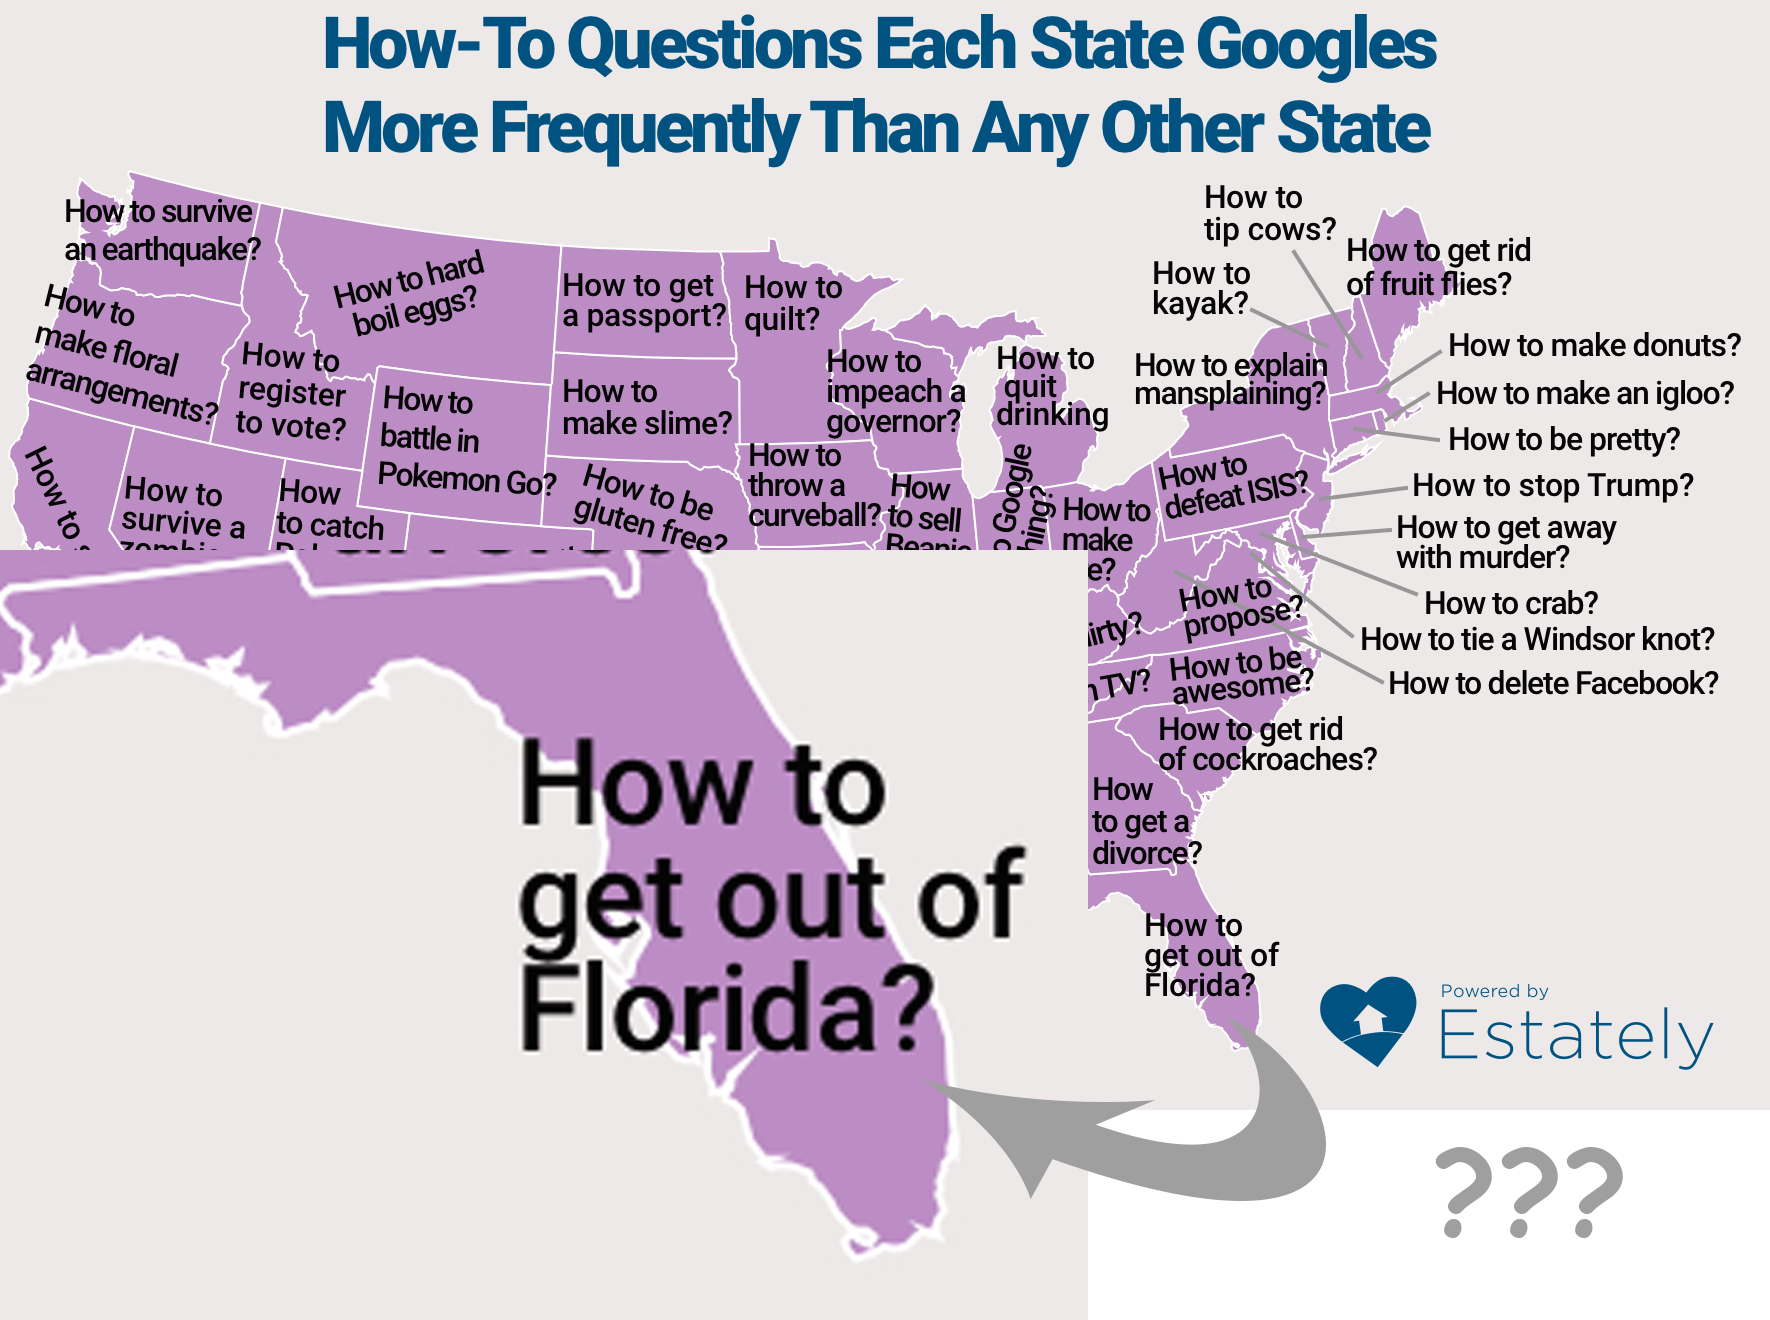 How the fuck do I get out of Florida